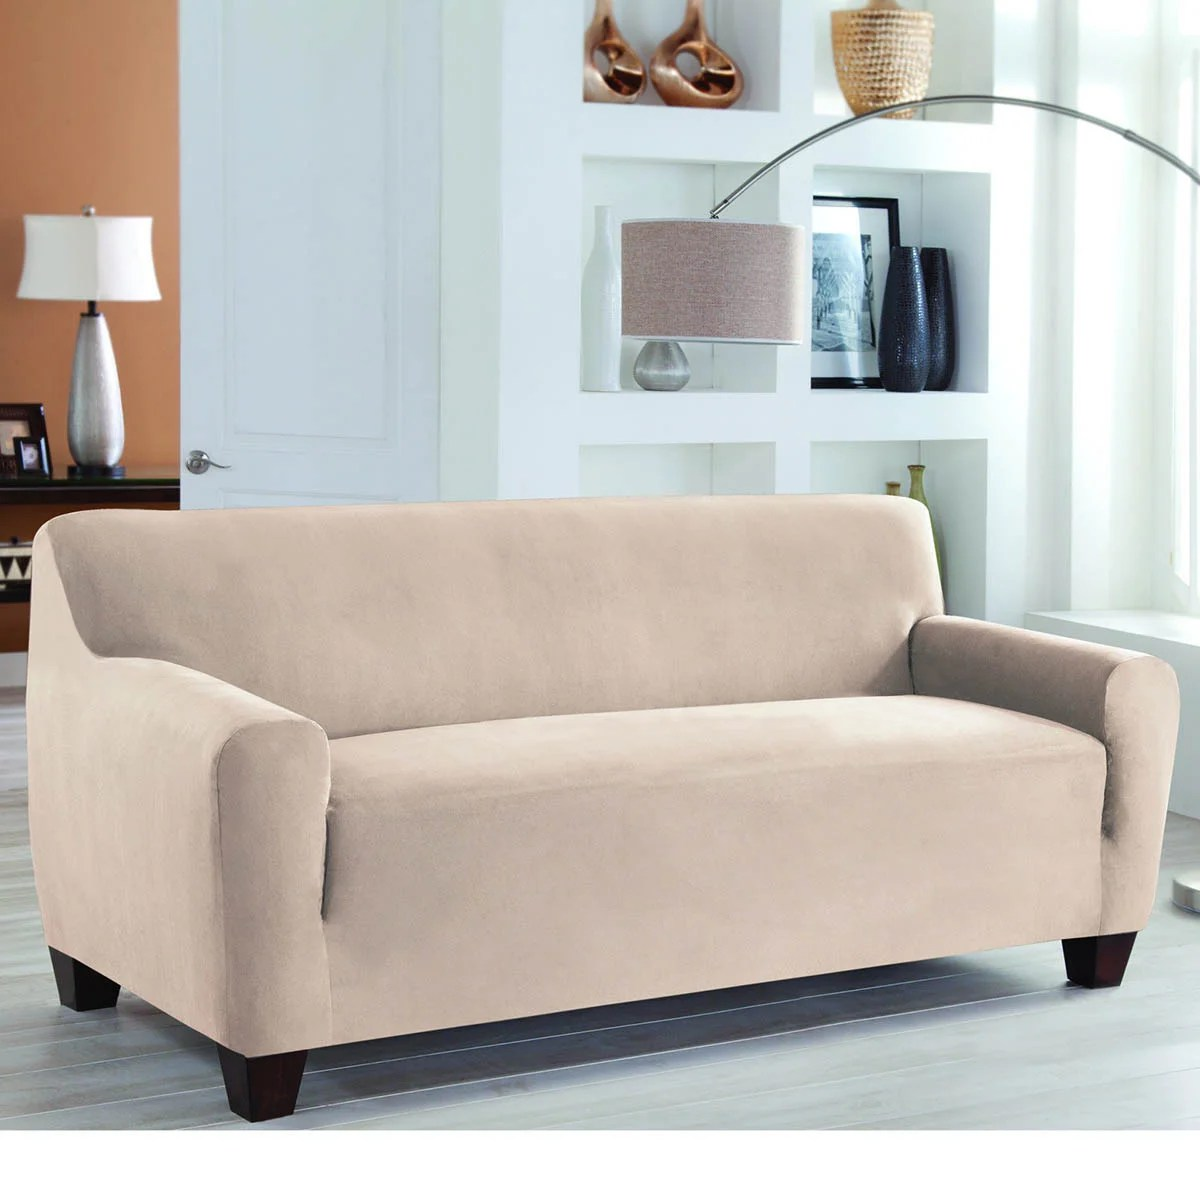 Fitted Slipcovers Couches Tailor Fit Stretch Fit Slipcover One Piece Sofa